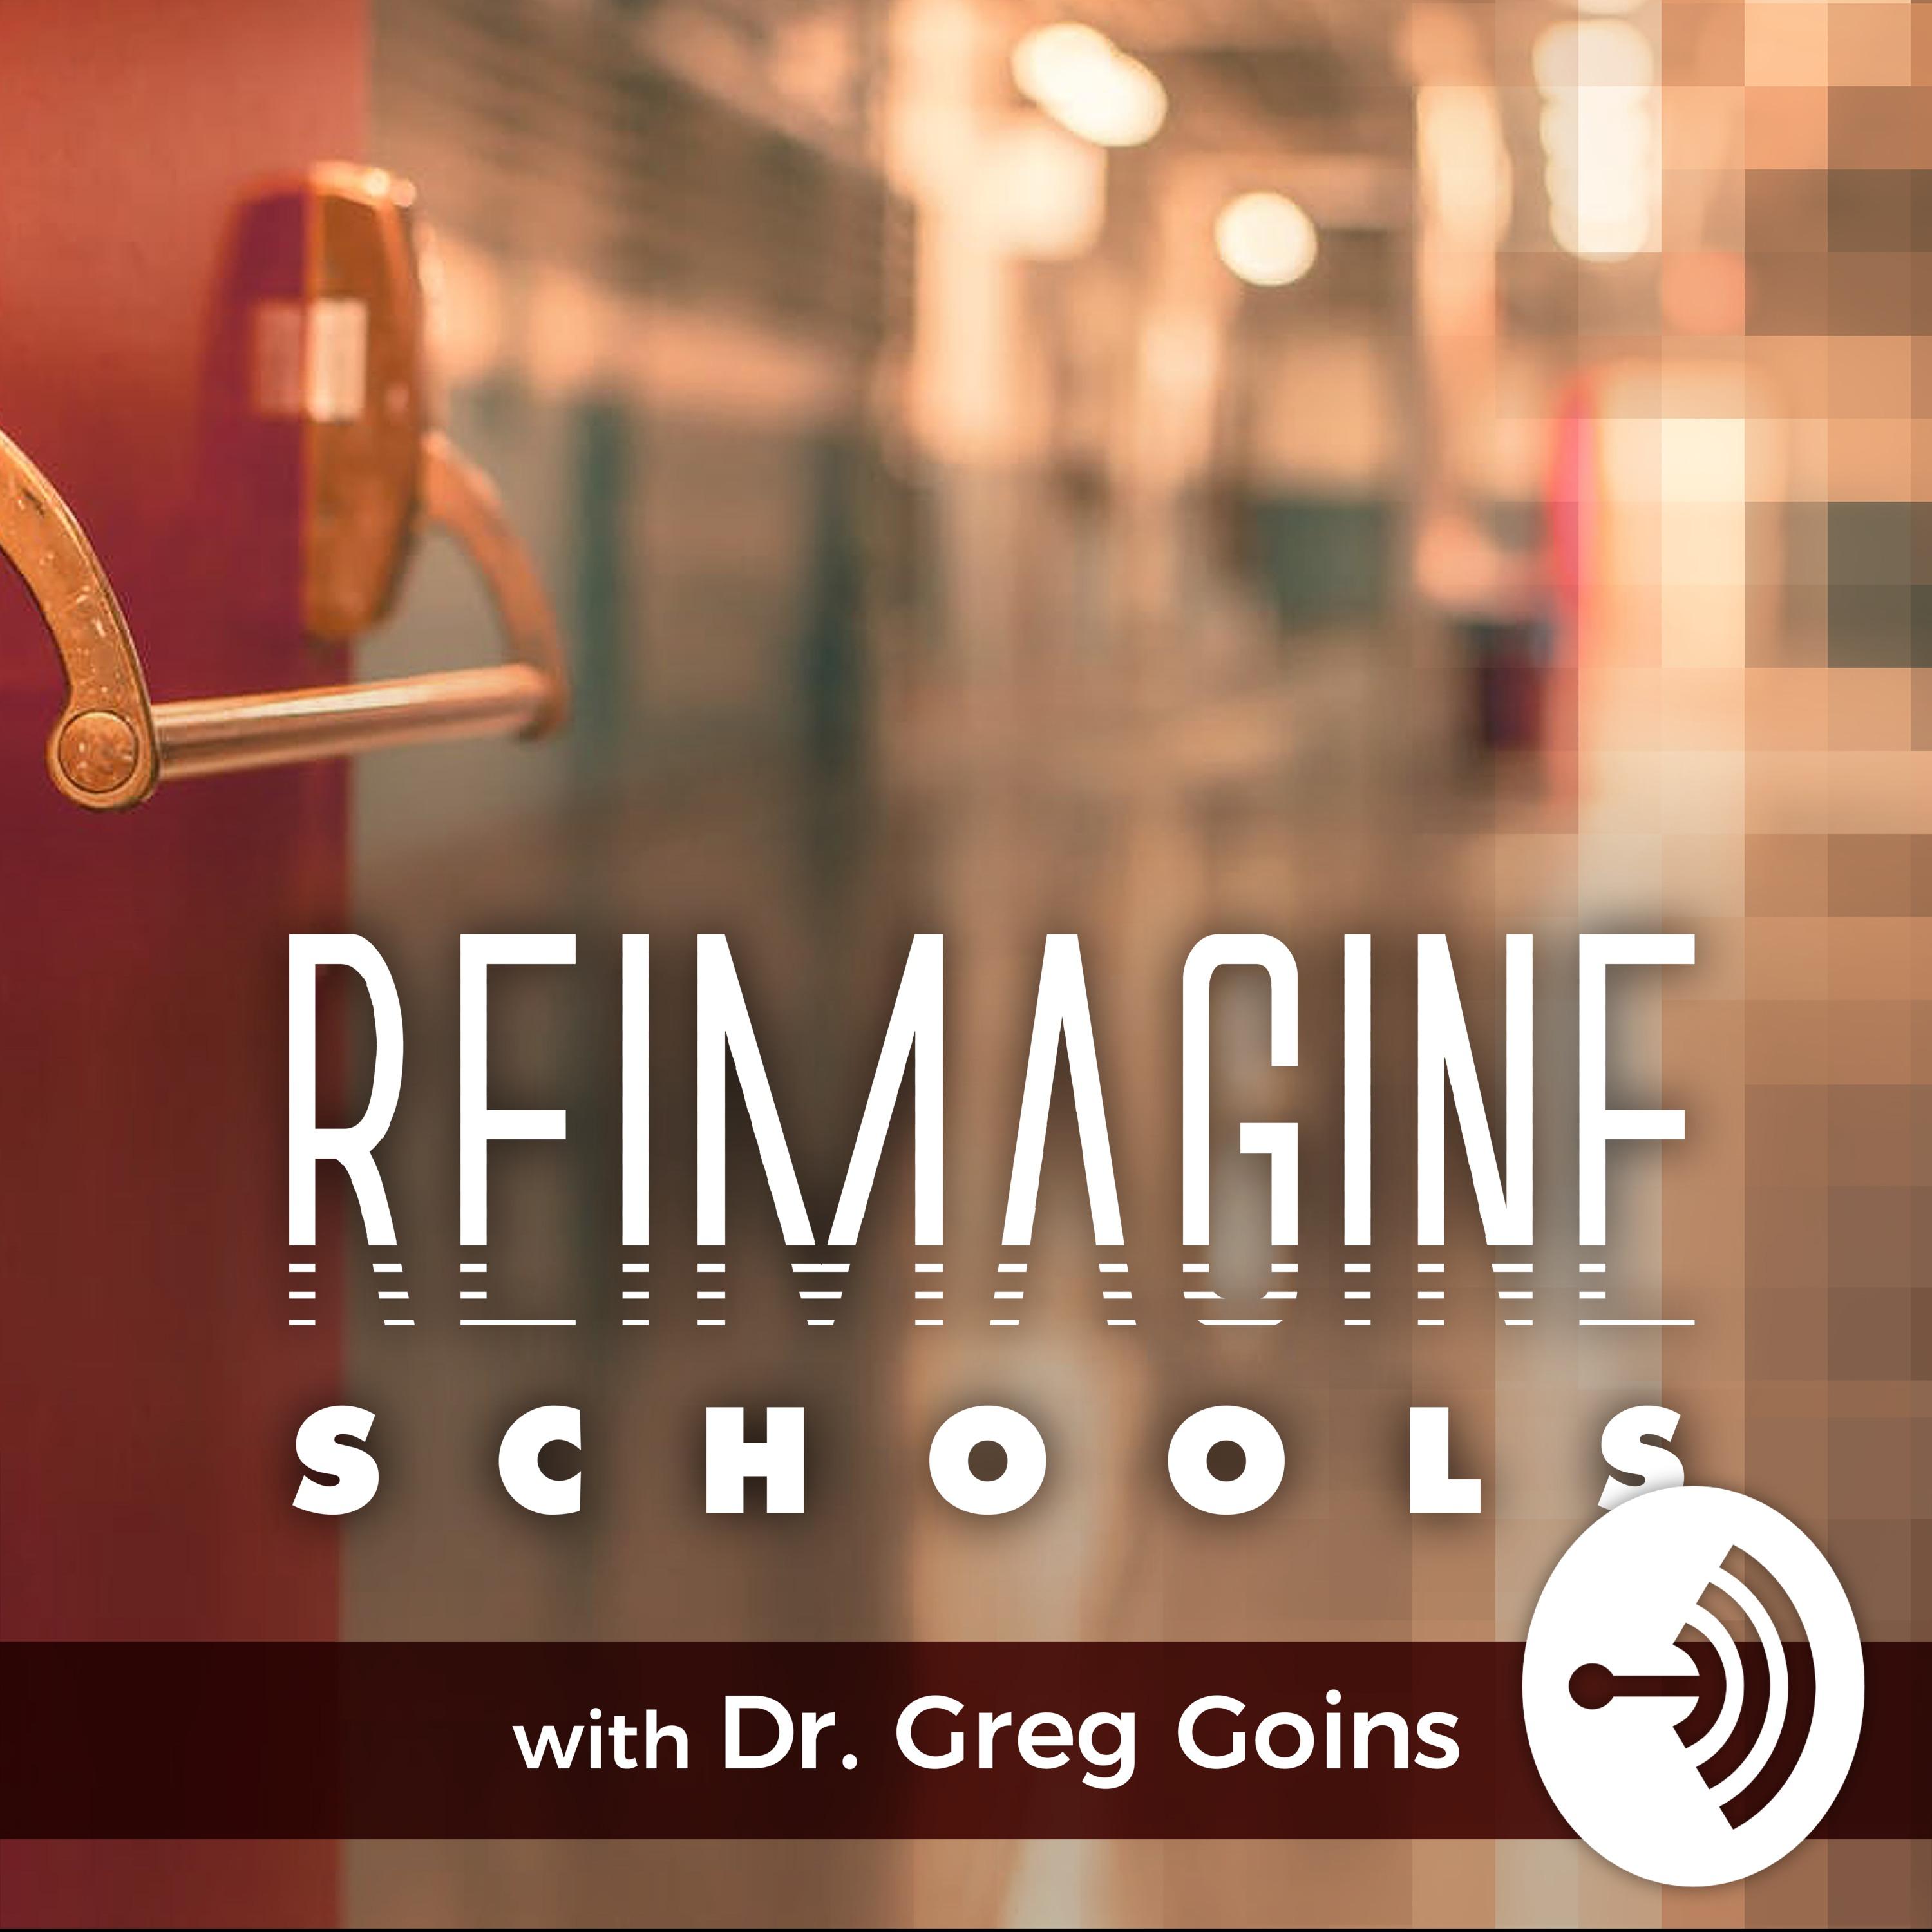 Join The Reimagine Schools Podcast Community